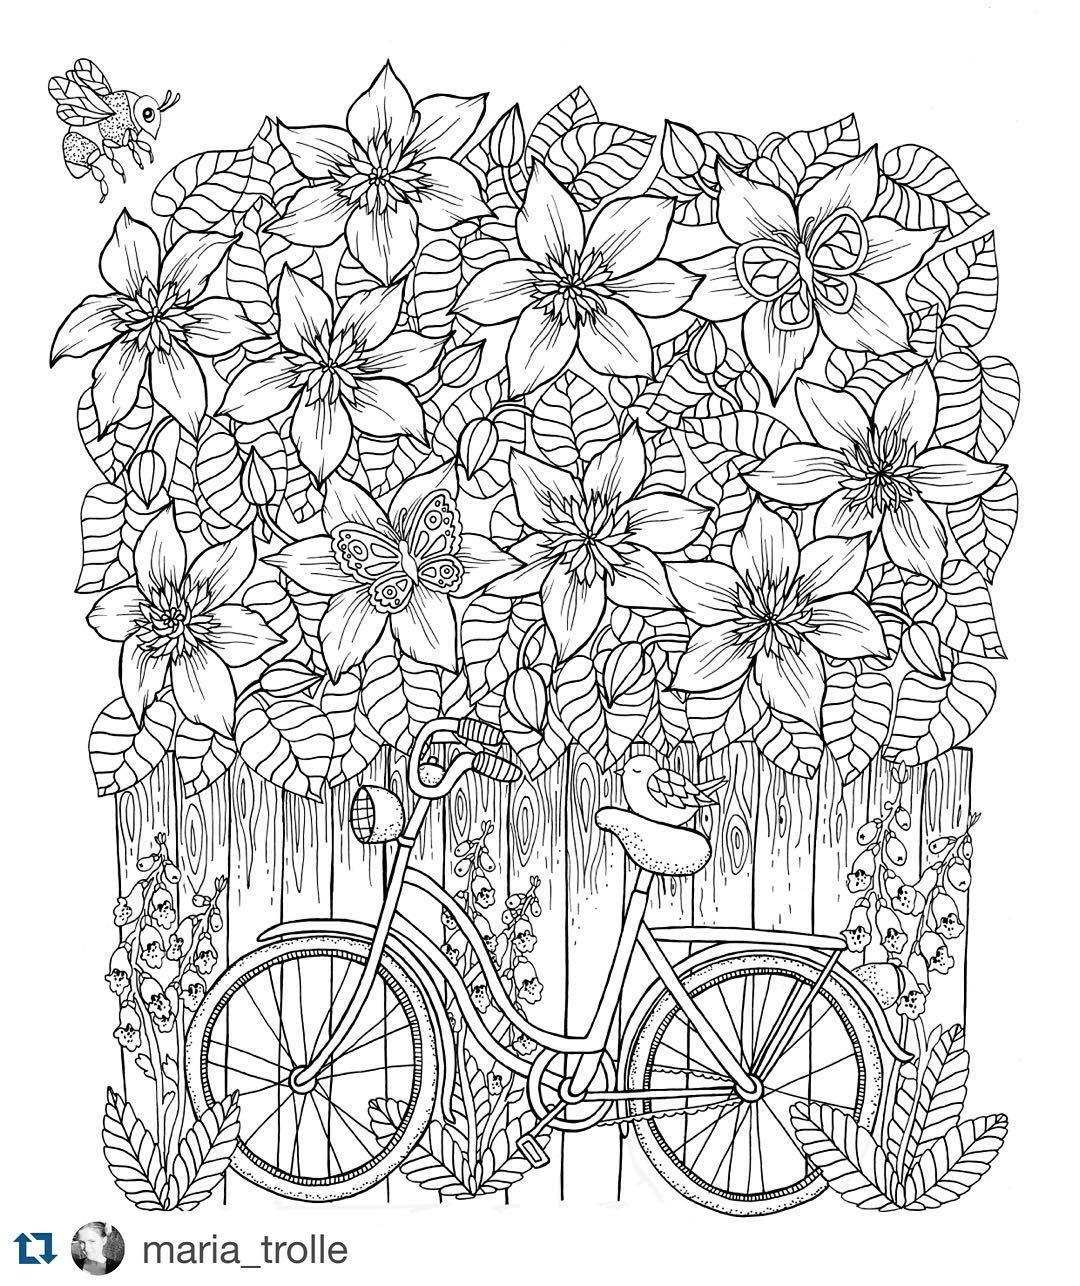 Flowers coloring book beautiful pictures from the garden of nature - Bike And Clematis From My Upcoming Coloring Book Mariatrolle